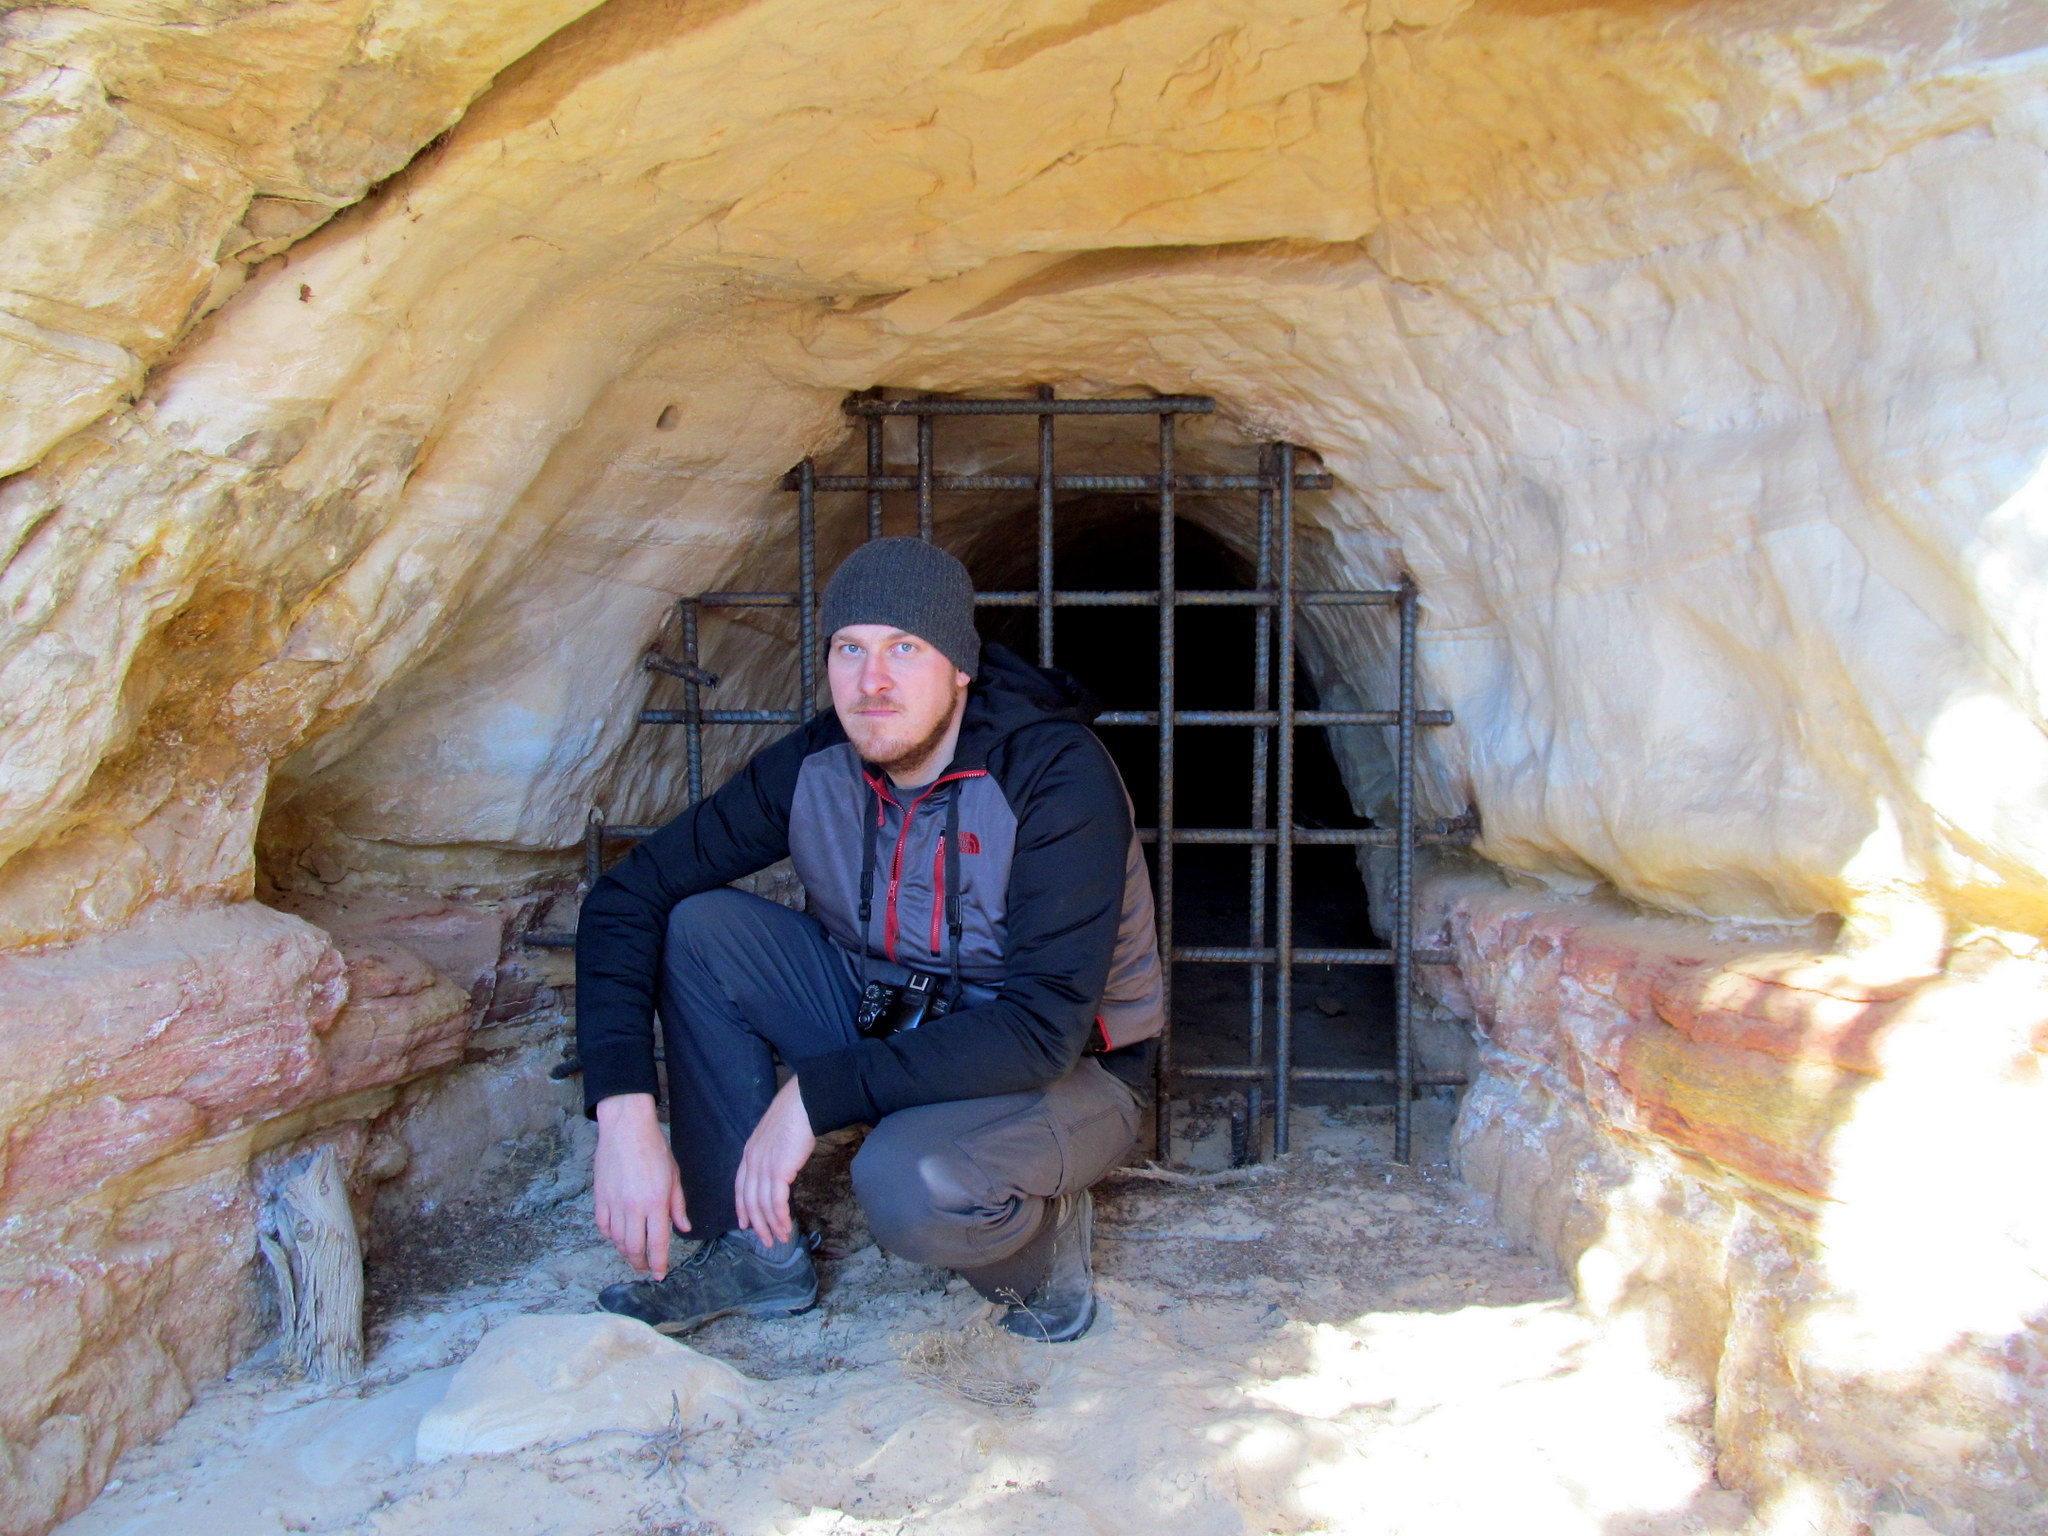 Photo: Chris in front of a closed mine tunnel